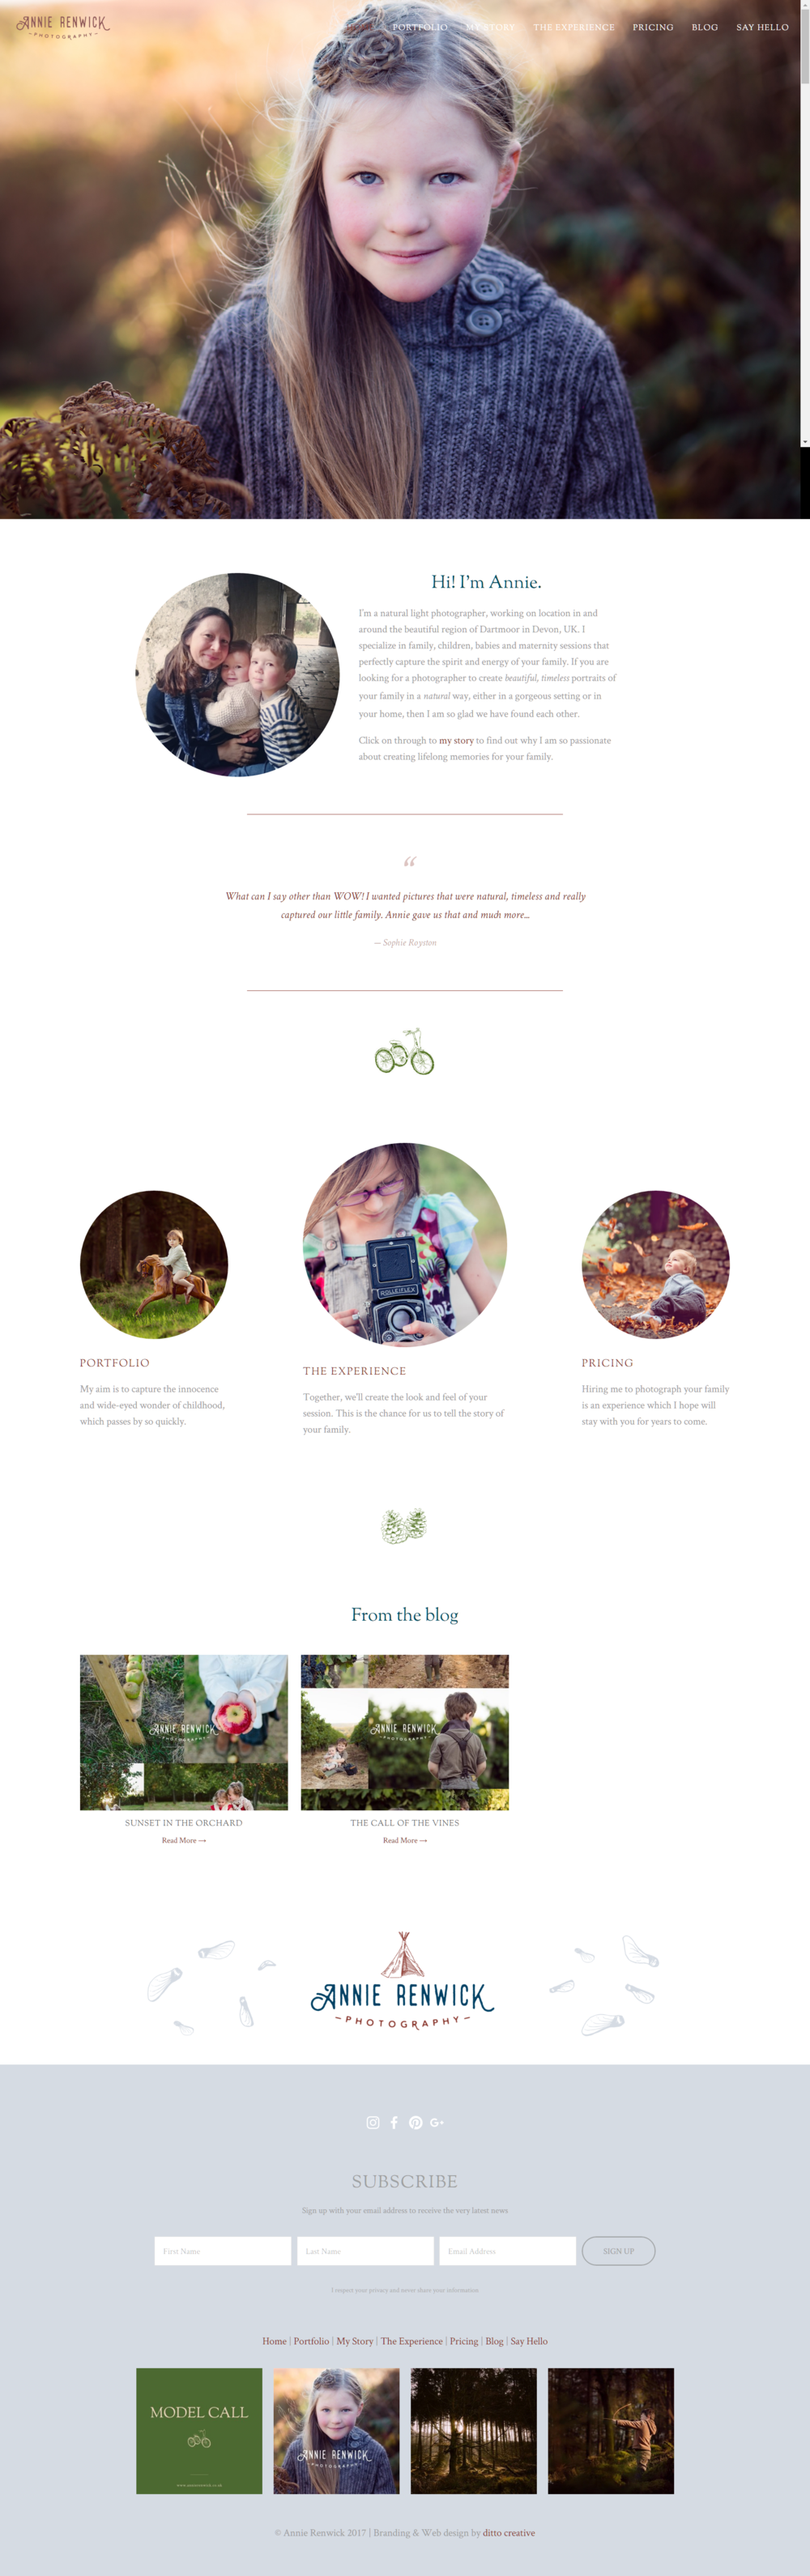 Annie Renwick fine art childrens photographer website design by Ditto Creative, branding agency in Kent, squarespace web design